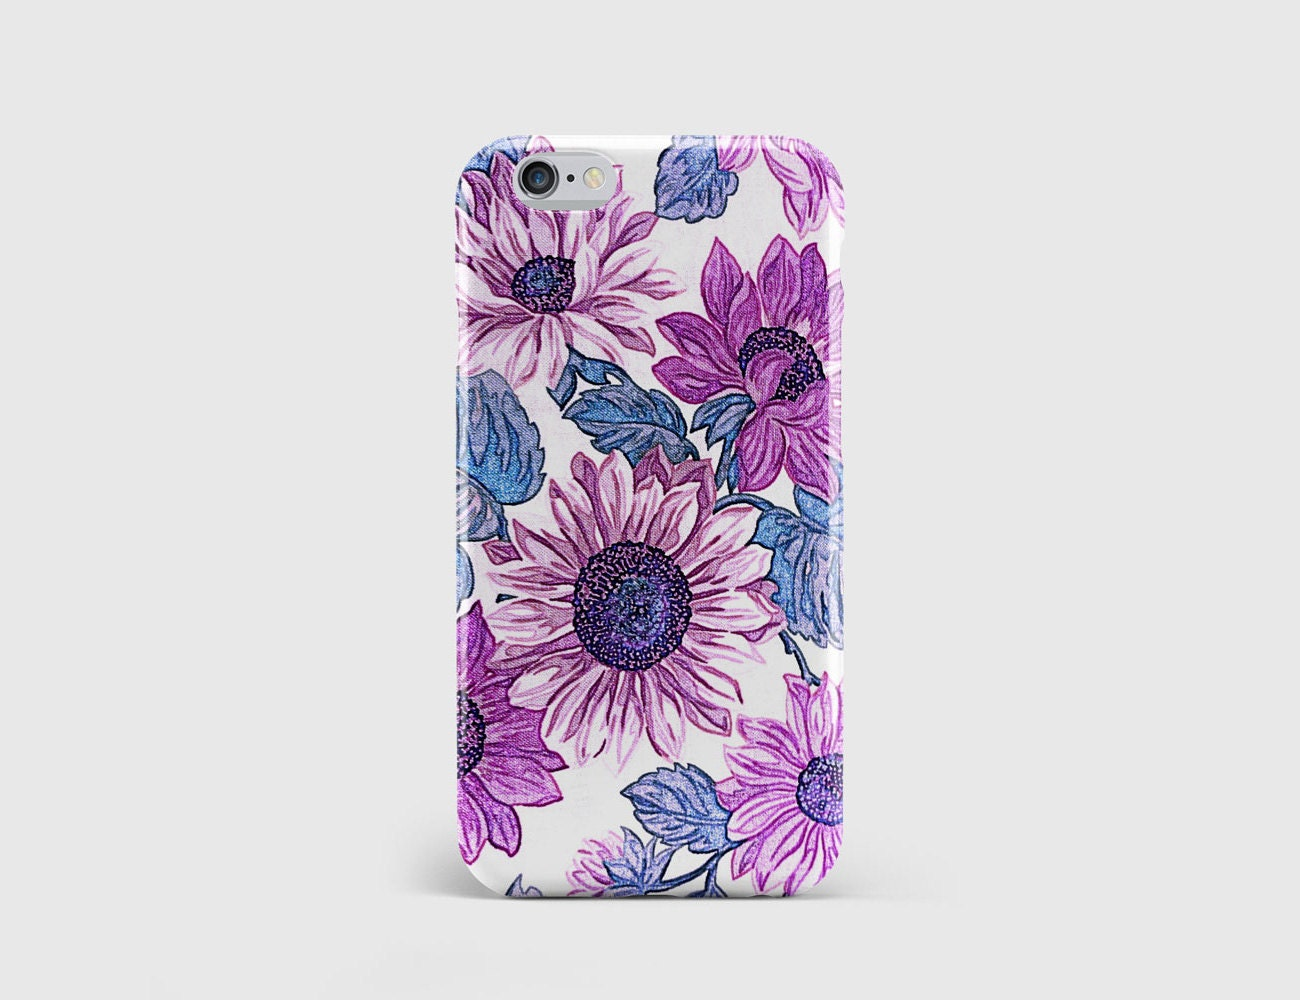 Hand Drawn Purple Flowers iPhone Case Floral Stencil Watercolour Painting Art Phone Case Cover iPhone 7 iPhone 6 iPhone 5  hcpp133